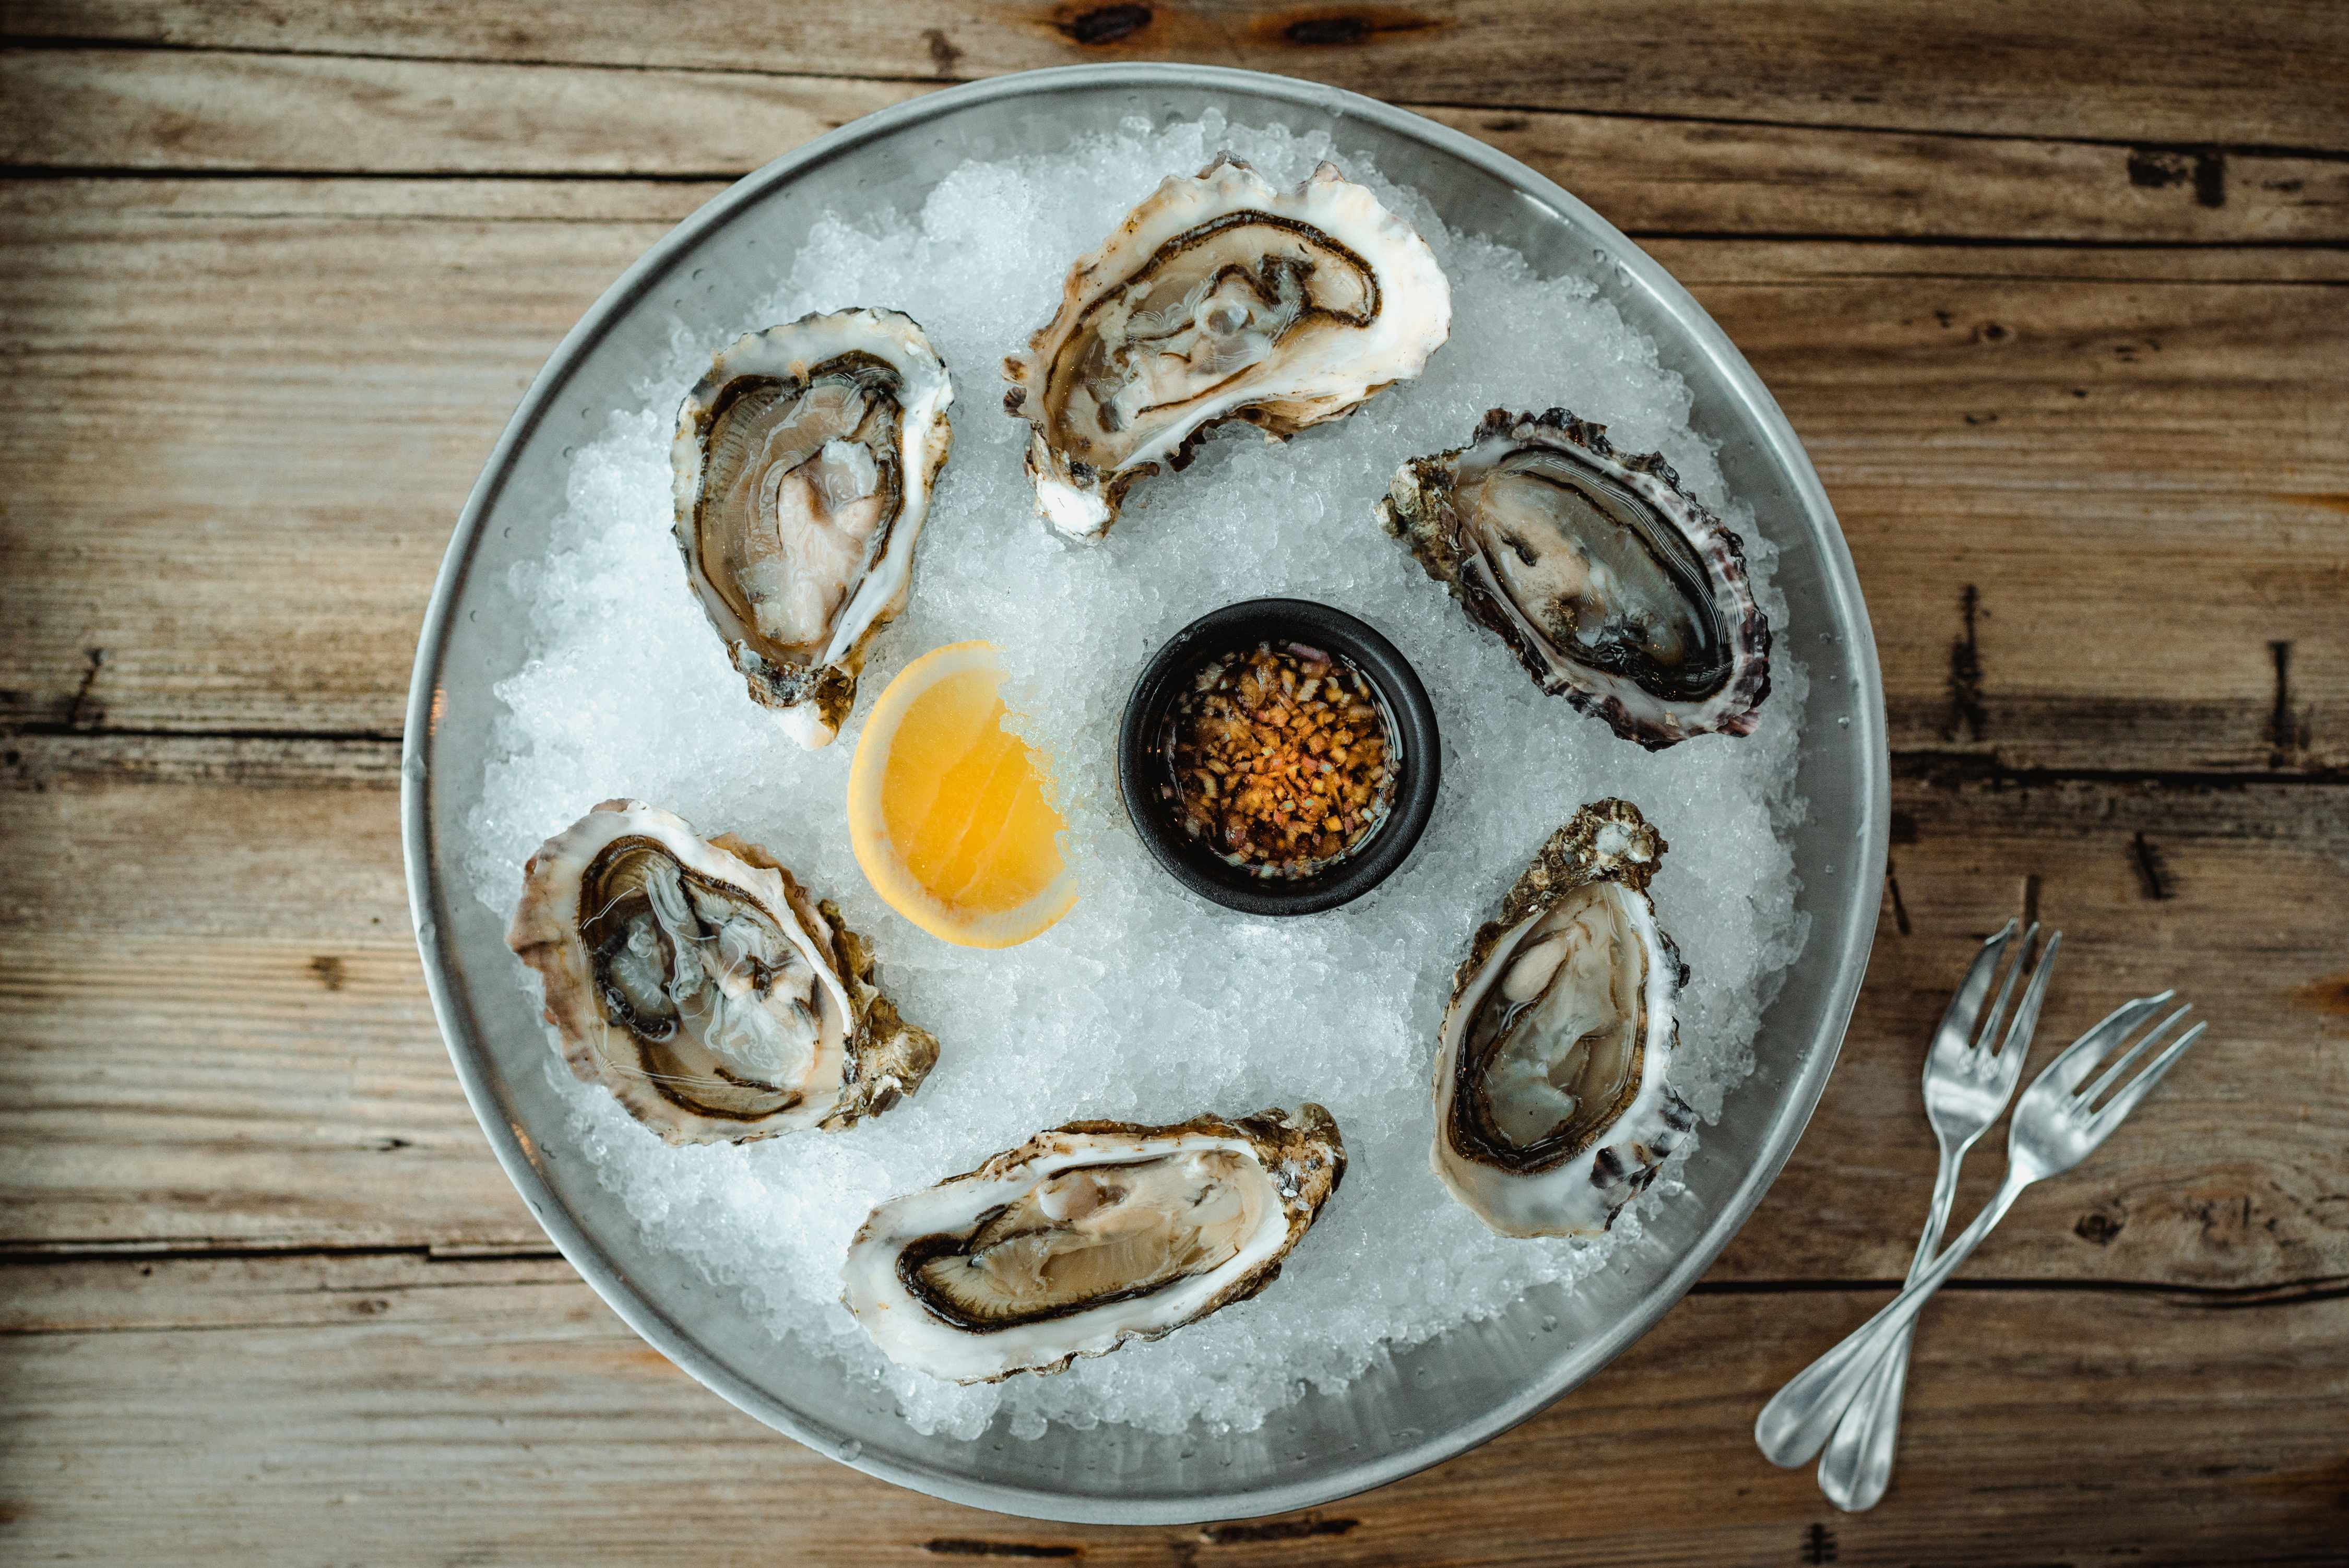 A wooden table has a platter laid on it. In the platter sits oysters in their shells on a bed of ice